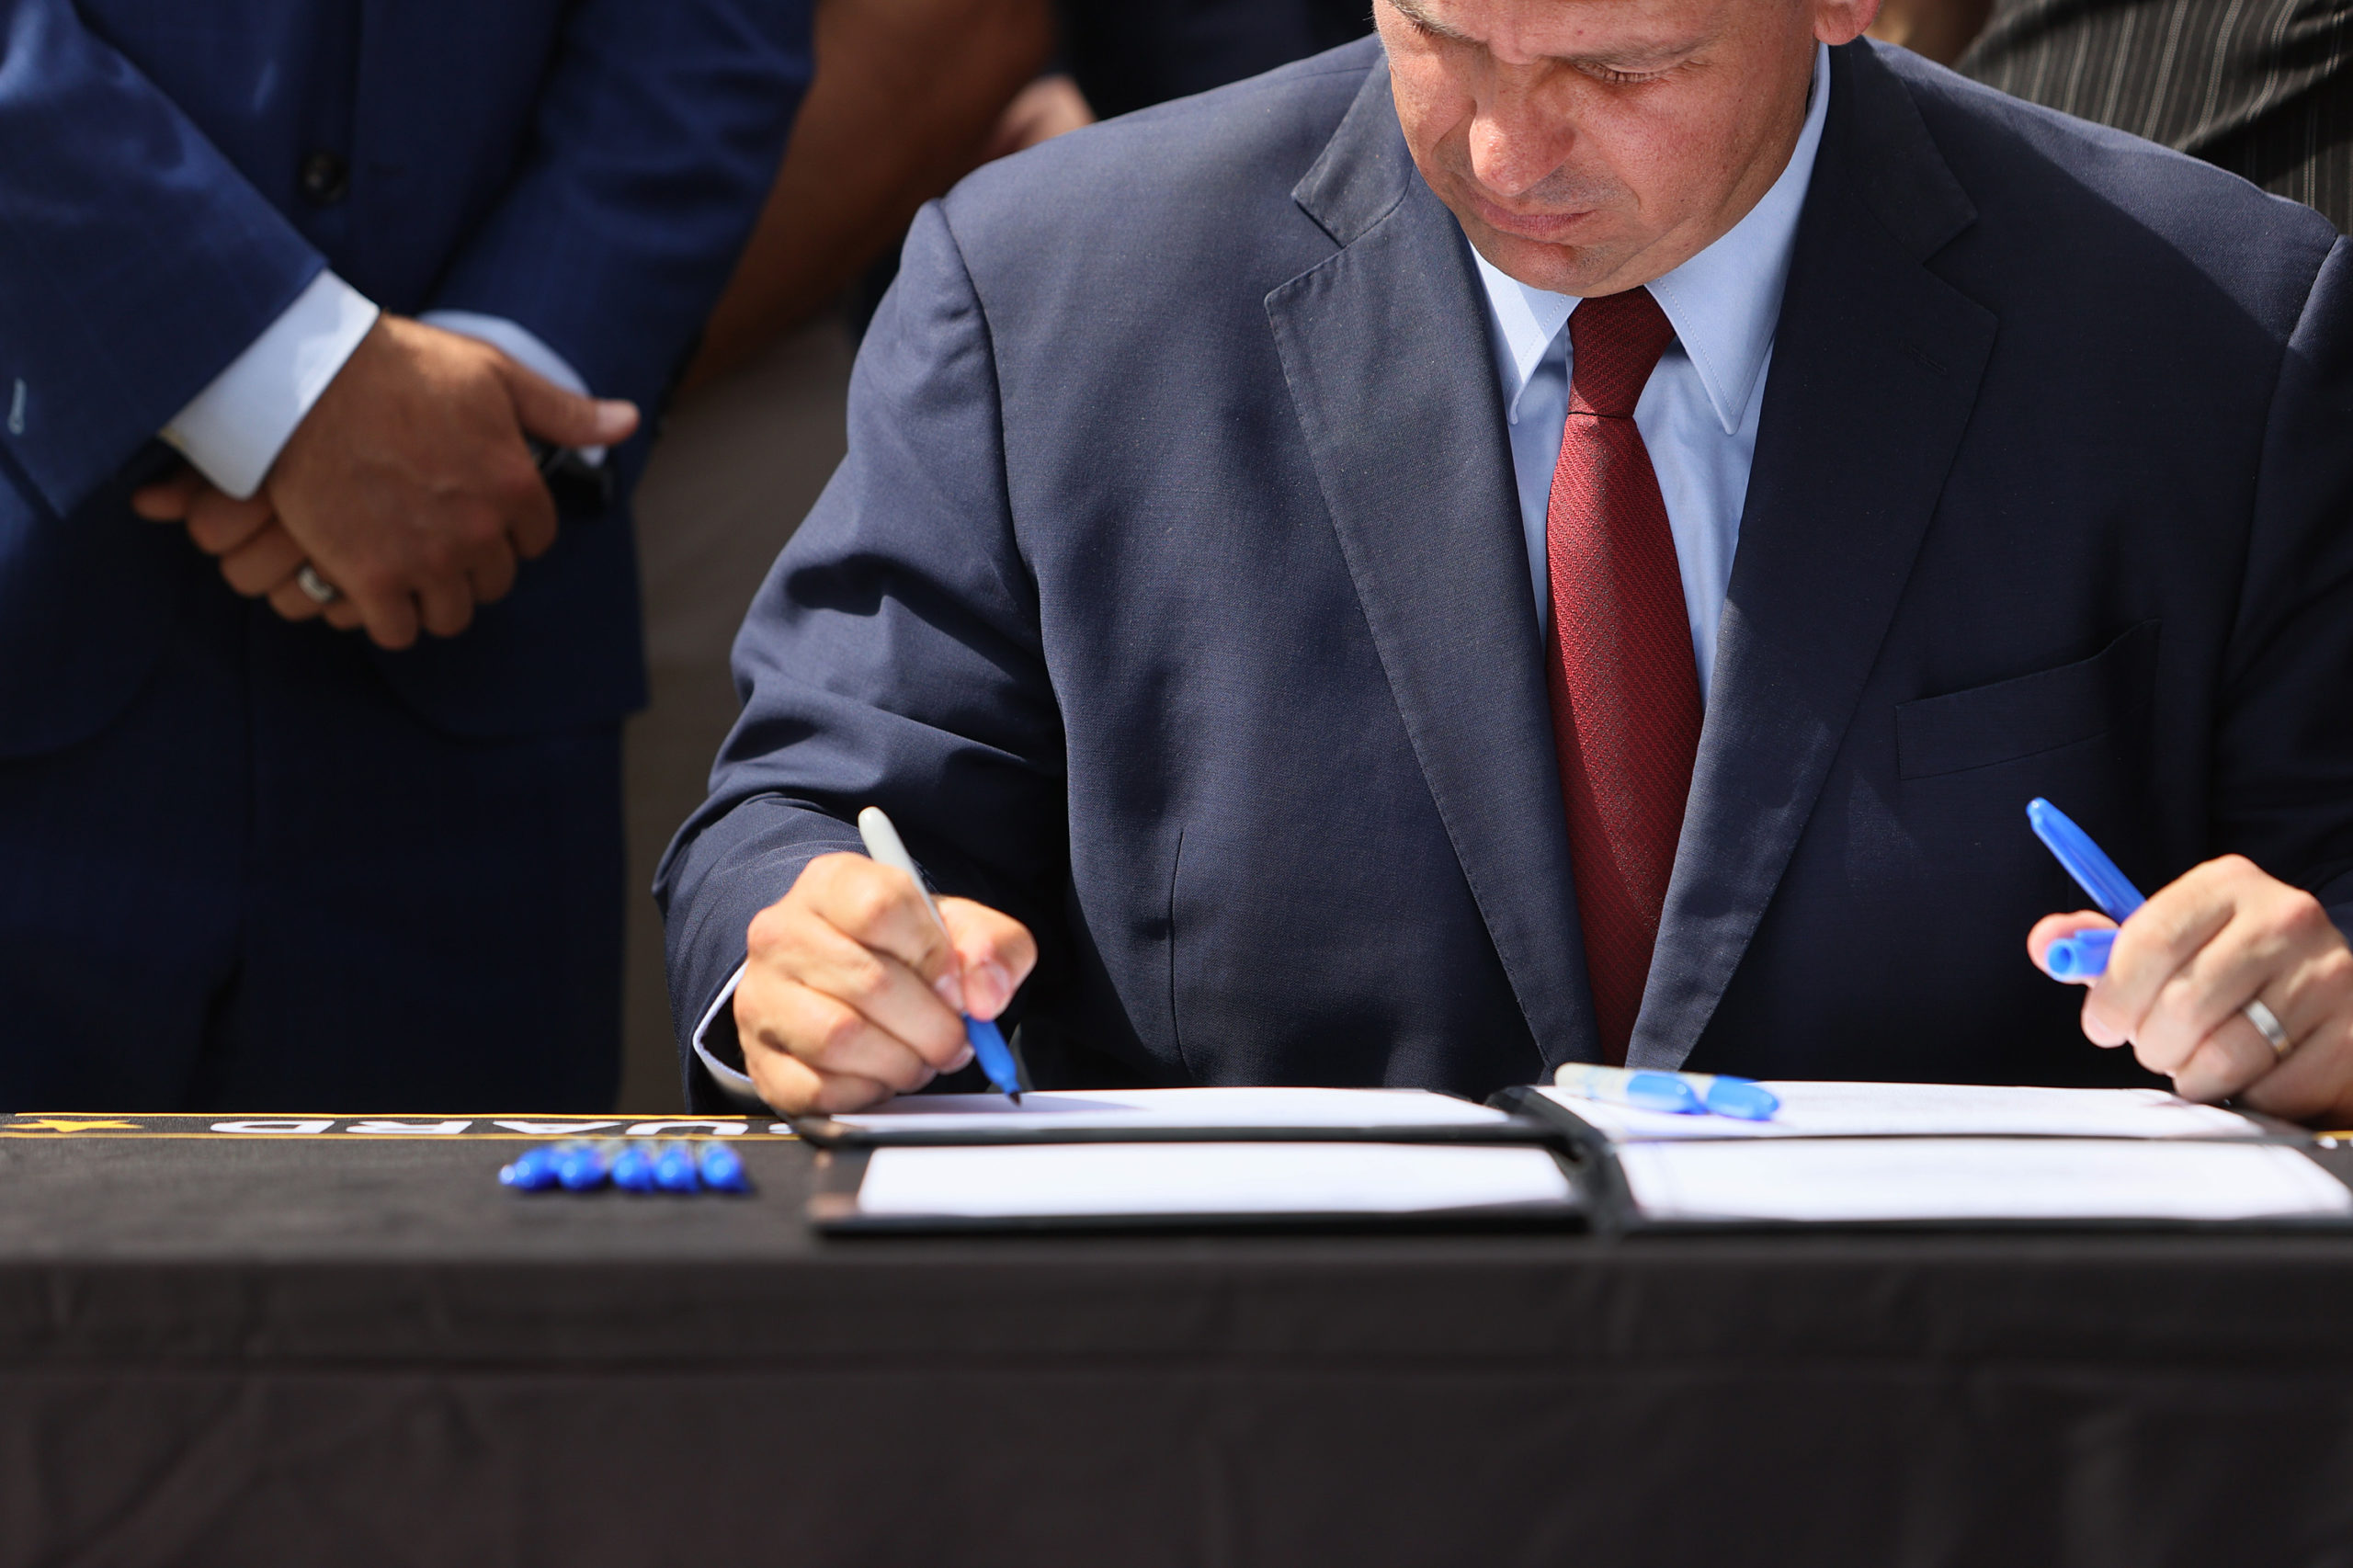 Florida Gov. Ron DeSantis signs two bills surrounded by officials on June 7 in Miami, Florida. (Joe Raedle/Getty Images)